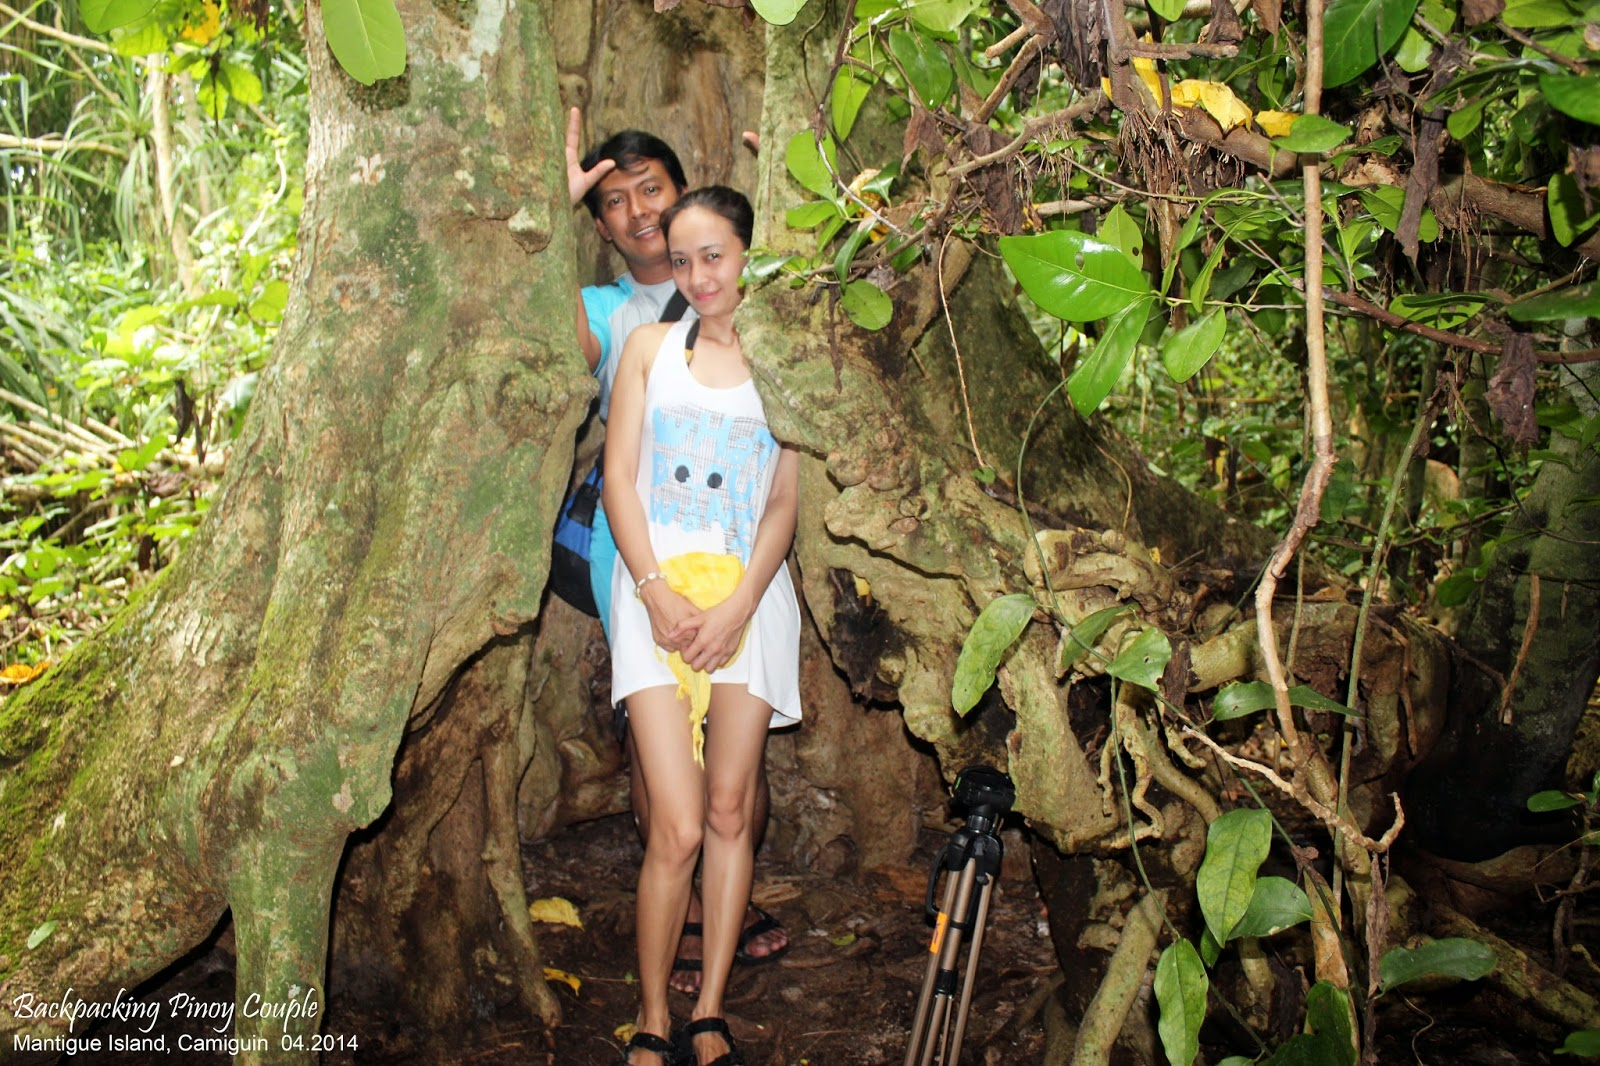 Backpacking Pinoy Couple, Backpacking Philippines, Northern Mindanao, Philippine travel, Camiguin, How to go to Camiguin, Mantigue Island, Fish Sanctuary, snorkeling in Camiguin